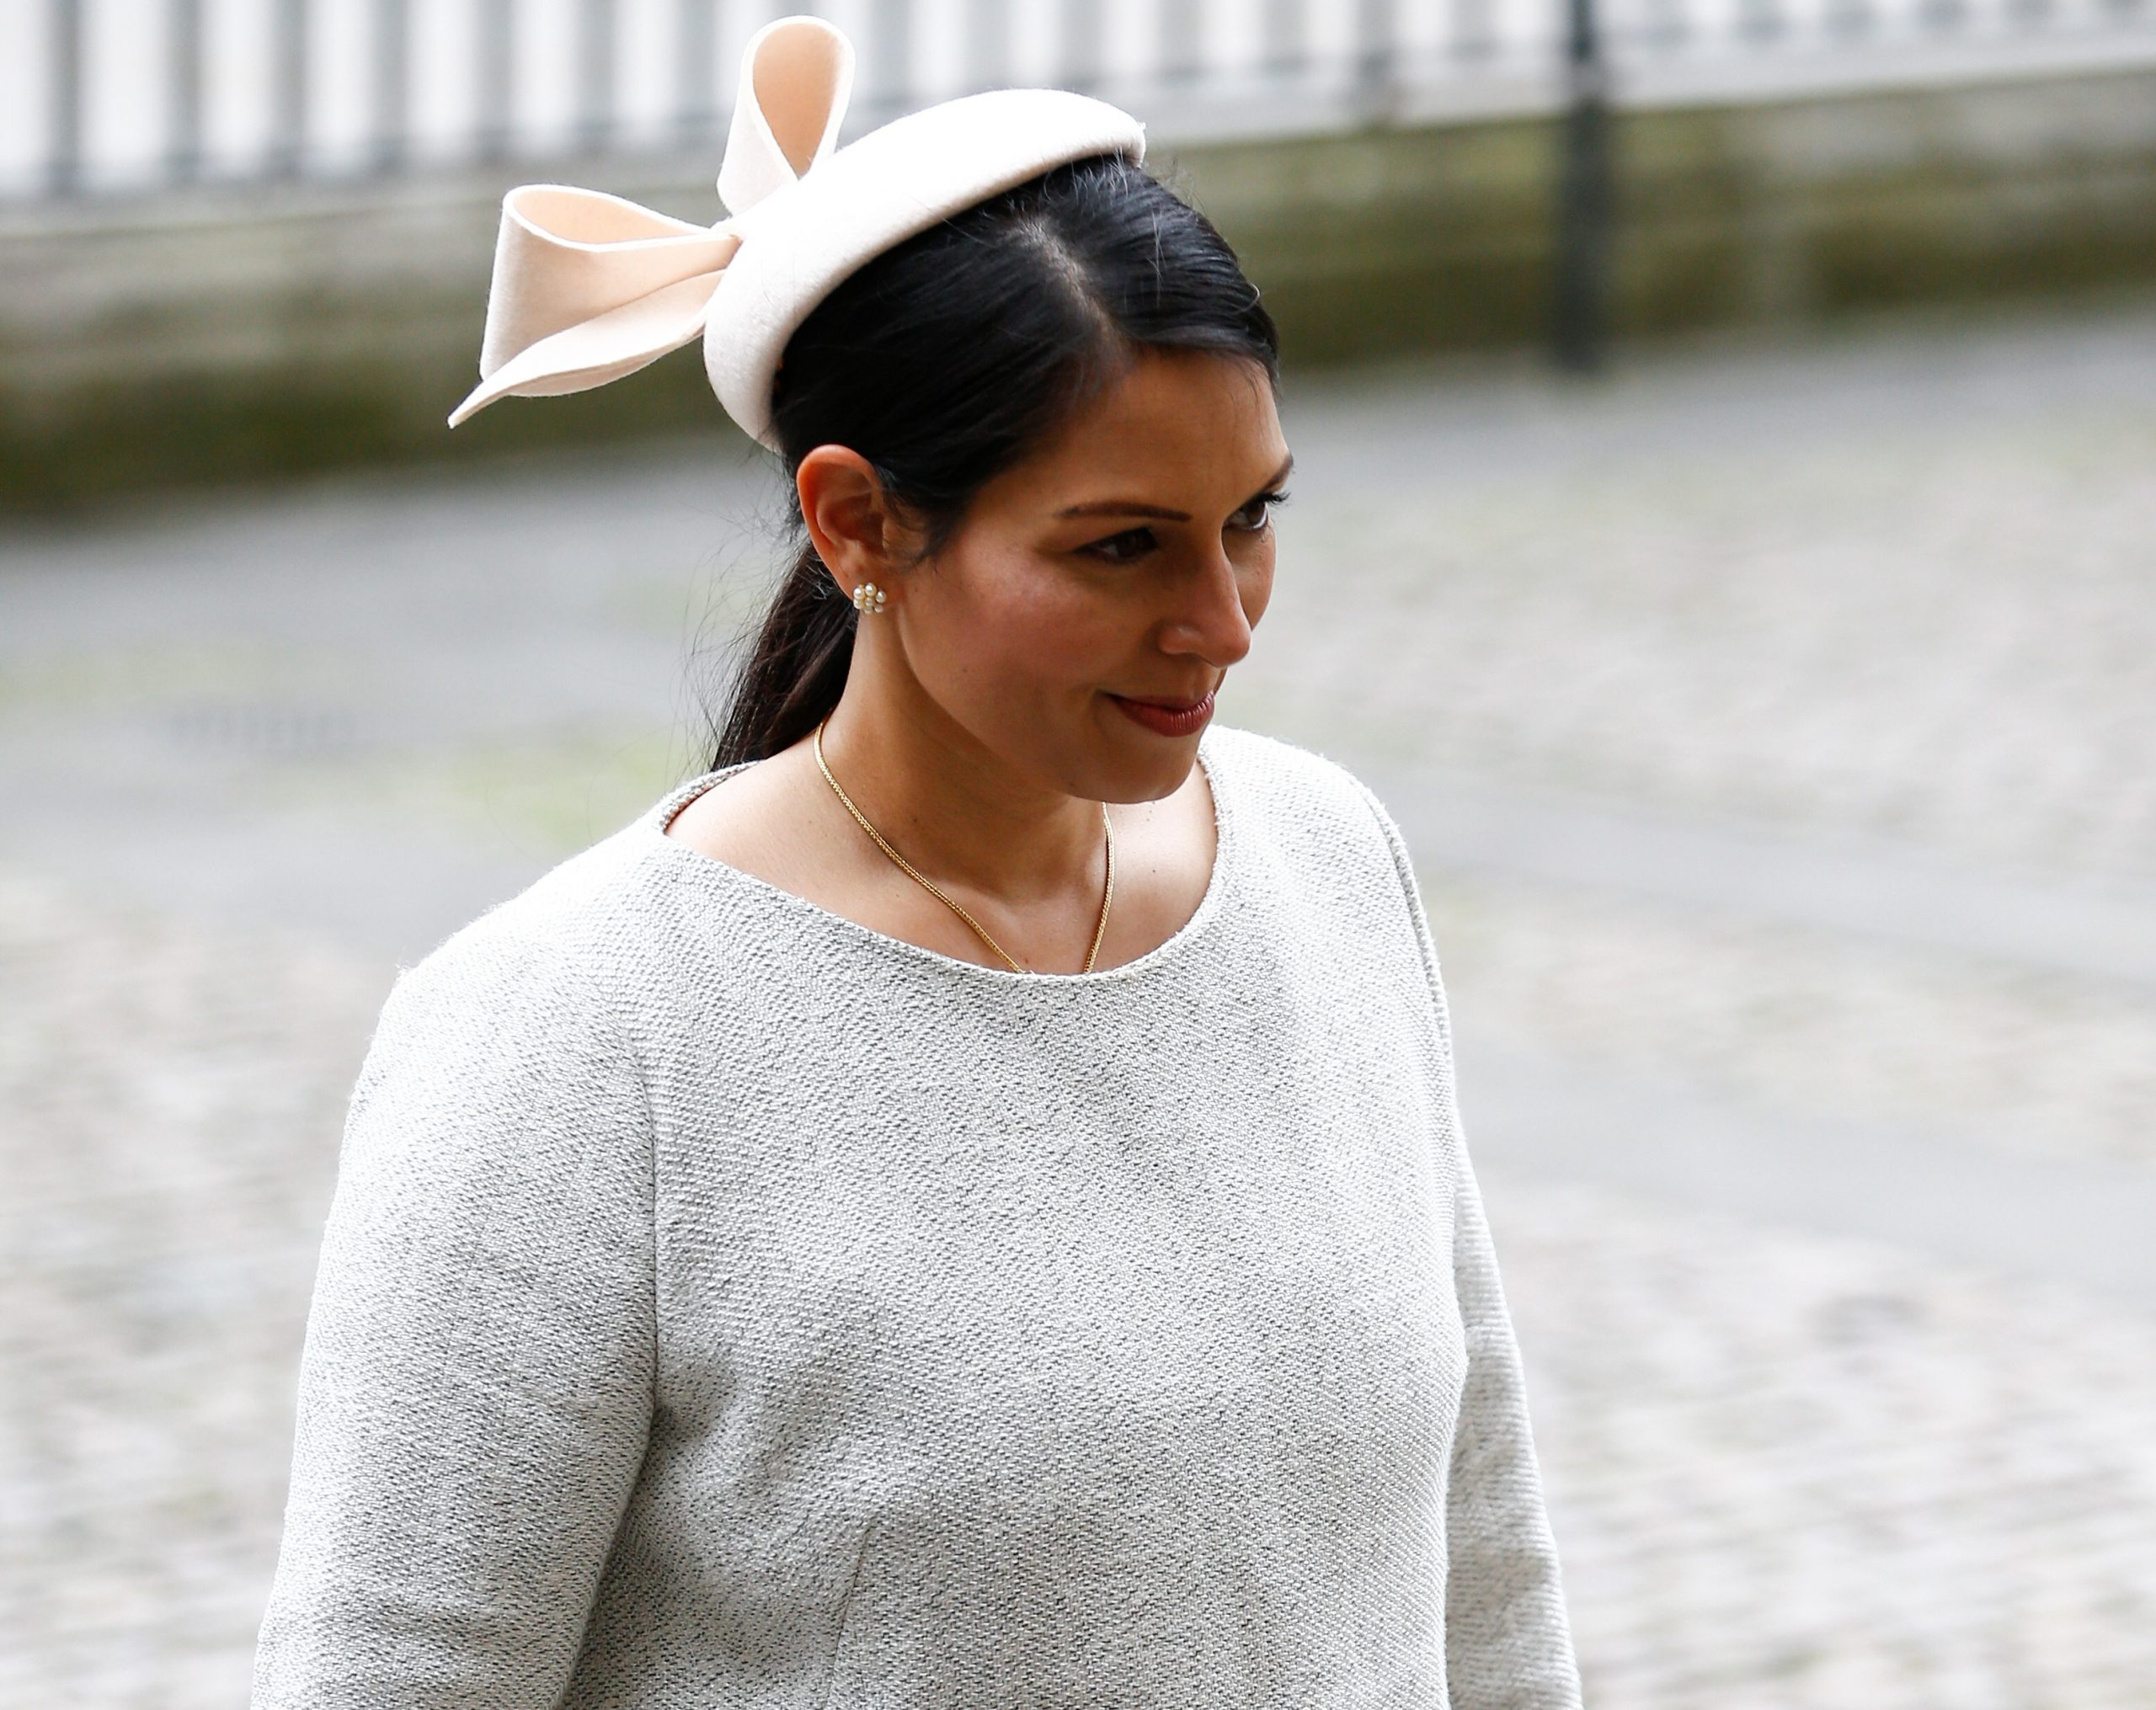 Home Secretary Priti Patel arrives for the annual Commonwealth Service at Westminster Abbey in London on March 9, 2020. (Photo: Reuters/Henry Nicholls)